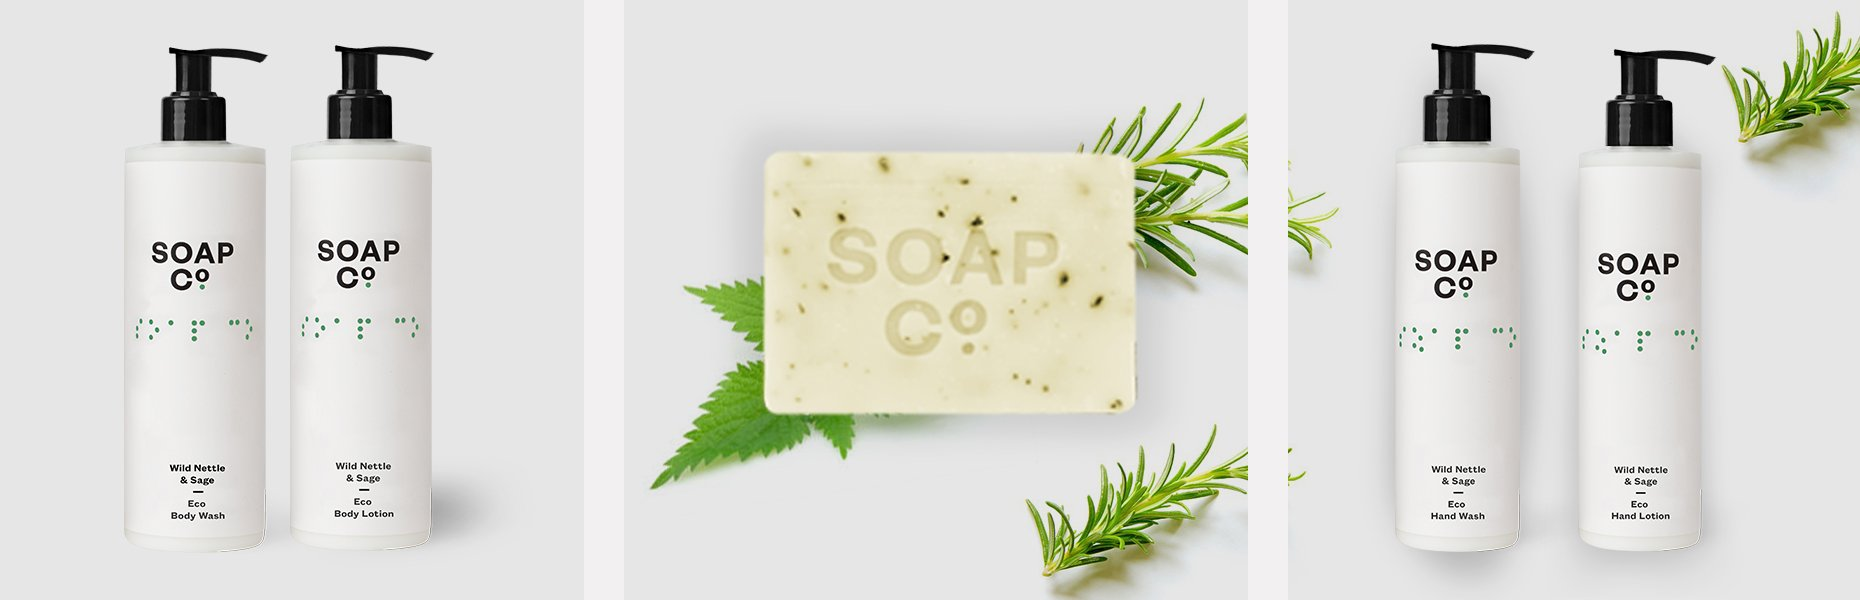 The Soap Co Wild Nettle & Sage Hand Wash